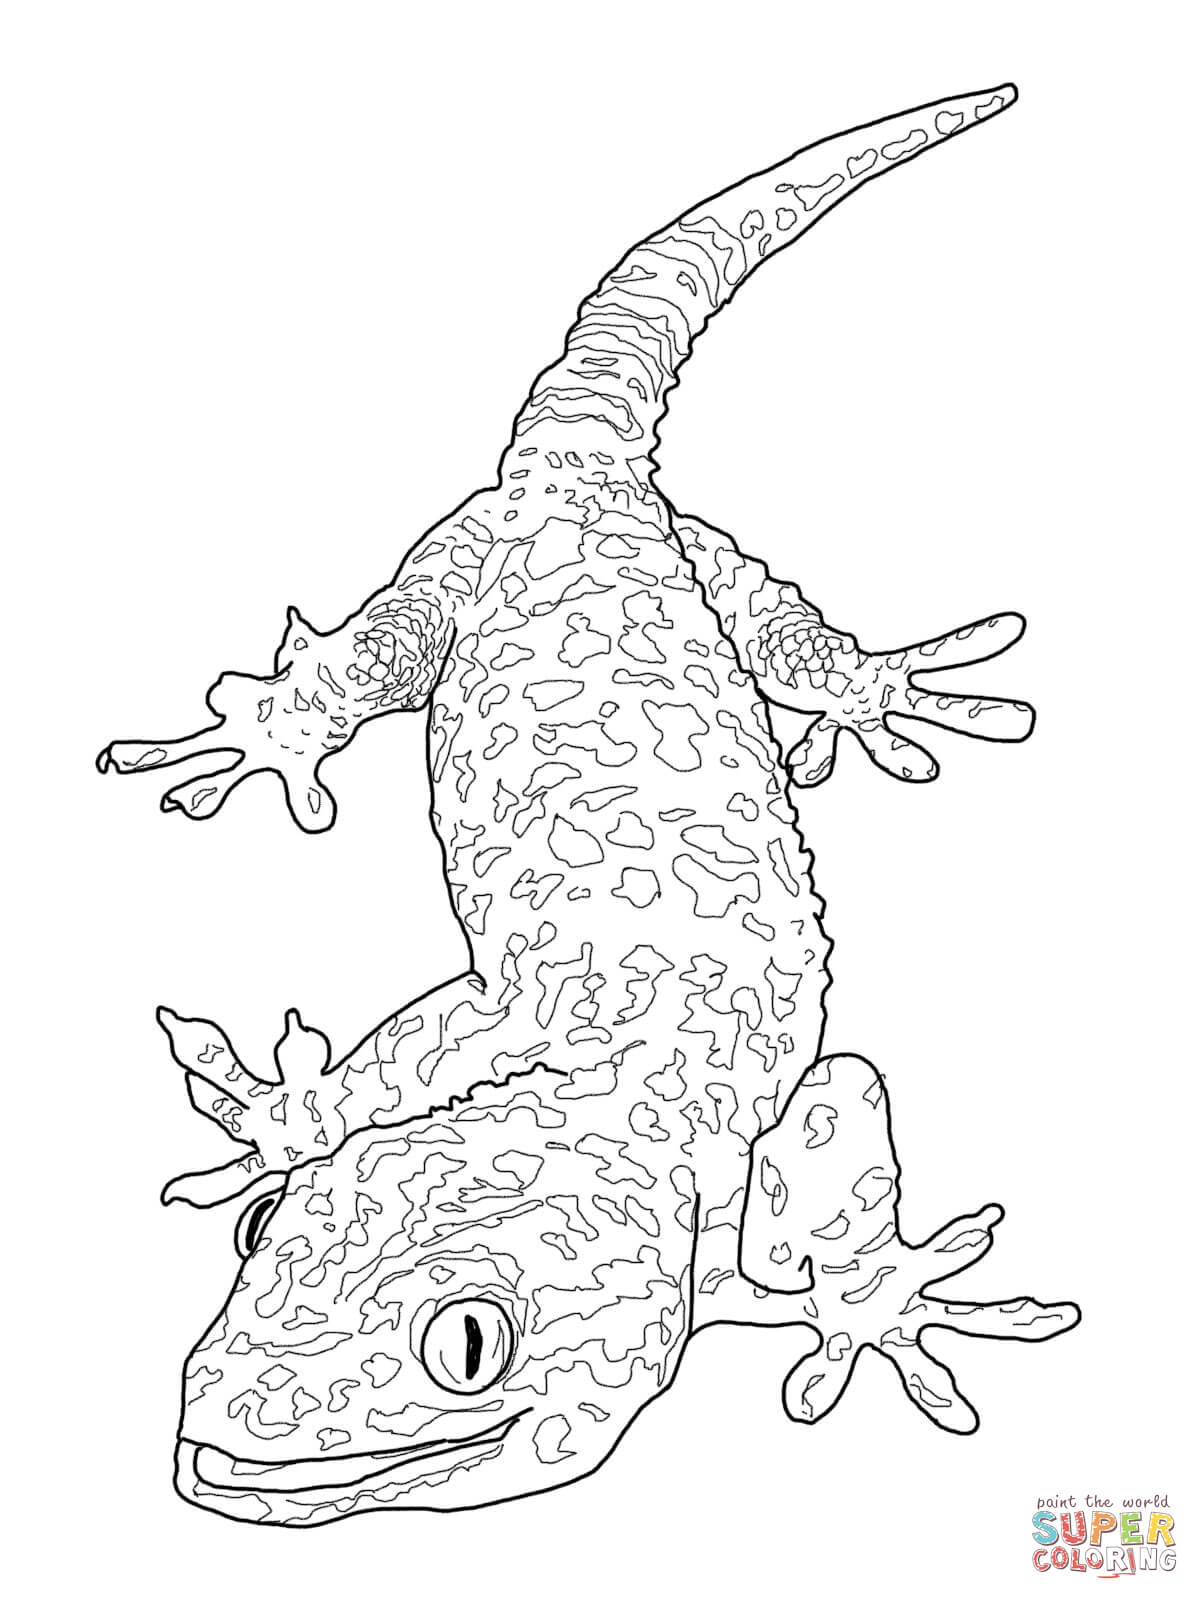 gecko lizard coloring pages cartoon gecko coloring pages download and print for free pages lizard coloring gecko